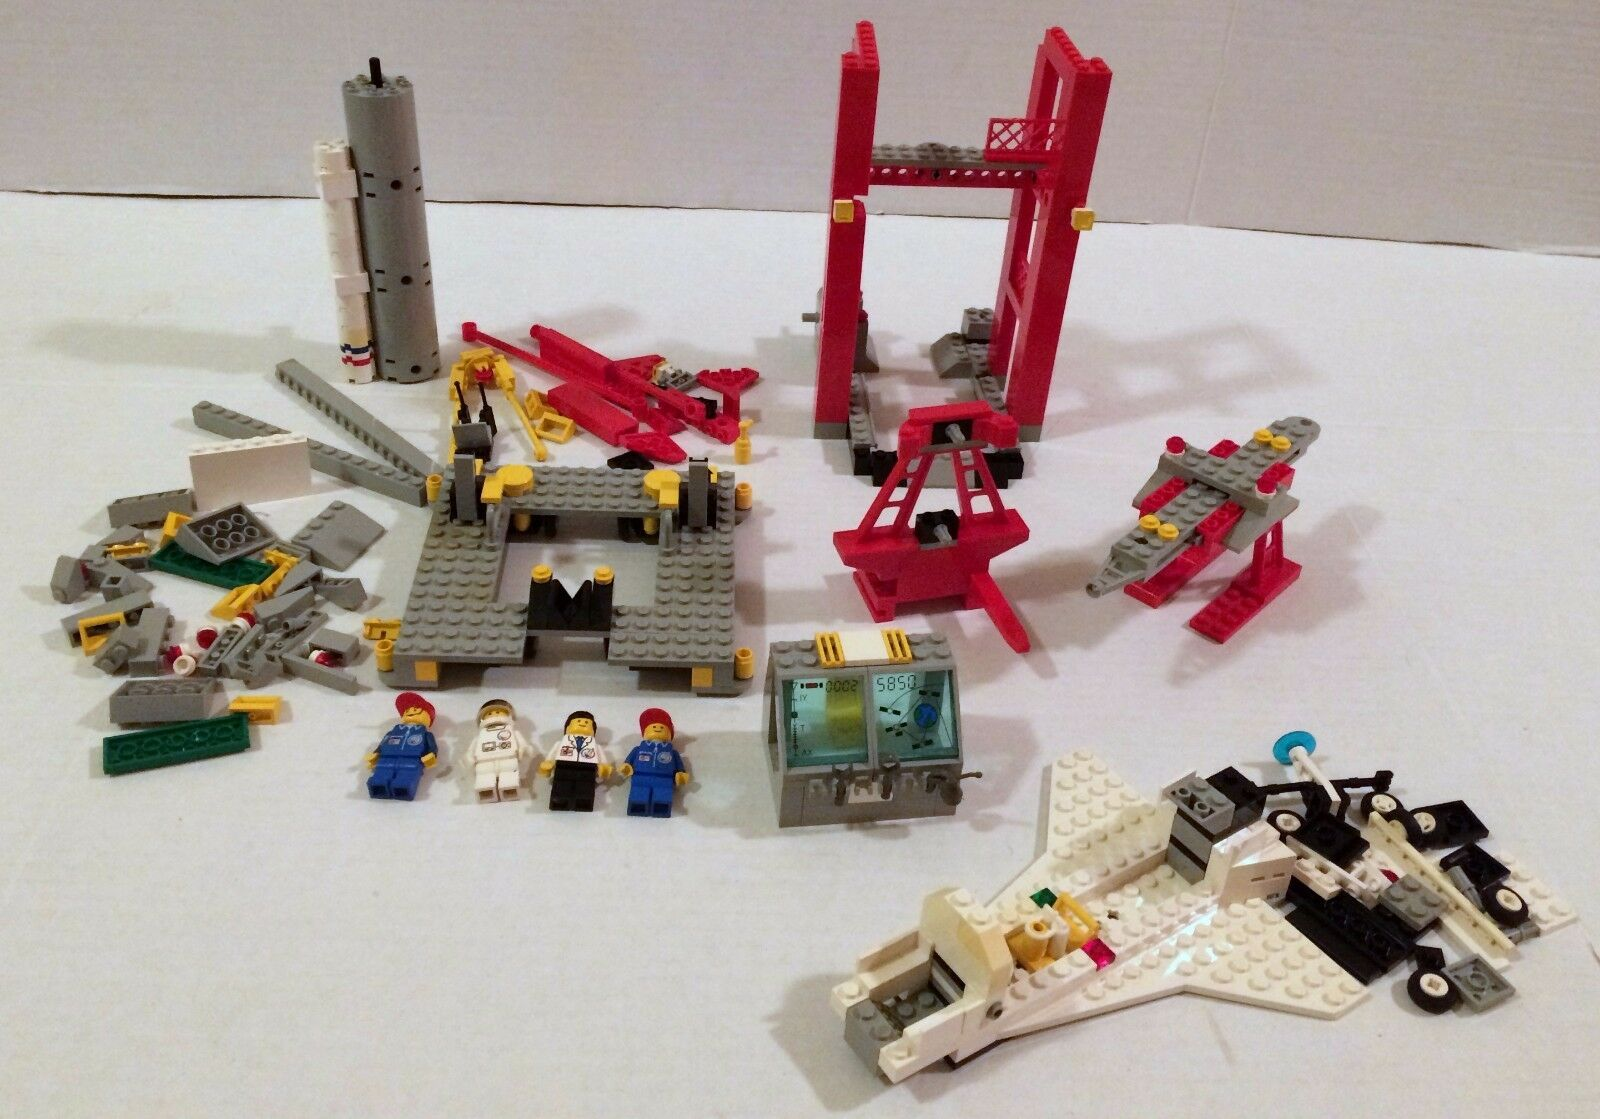 LEGO 6339 Town Launch Command Shuttle Launch Pad NOT Complete